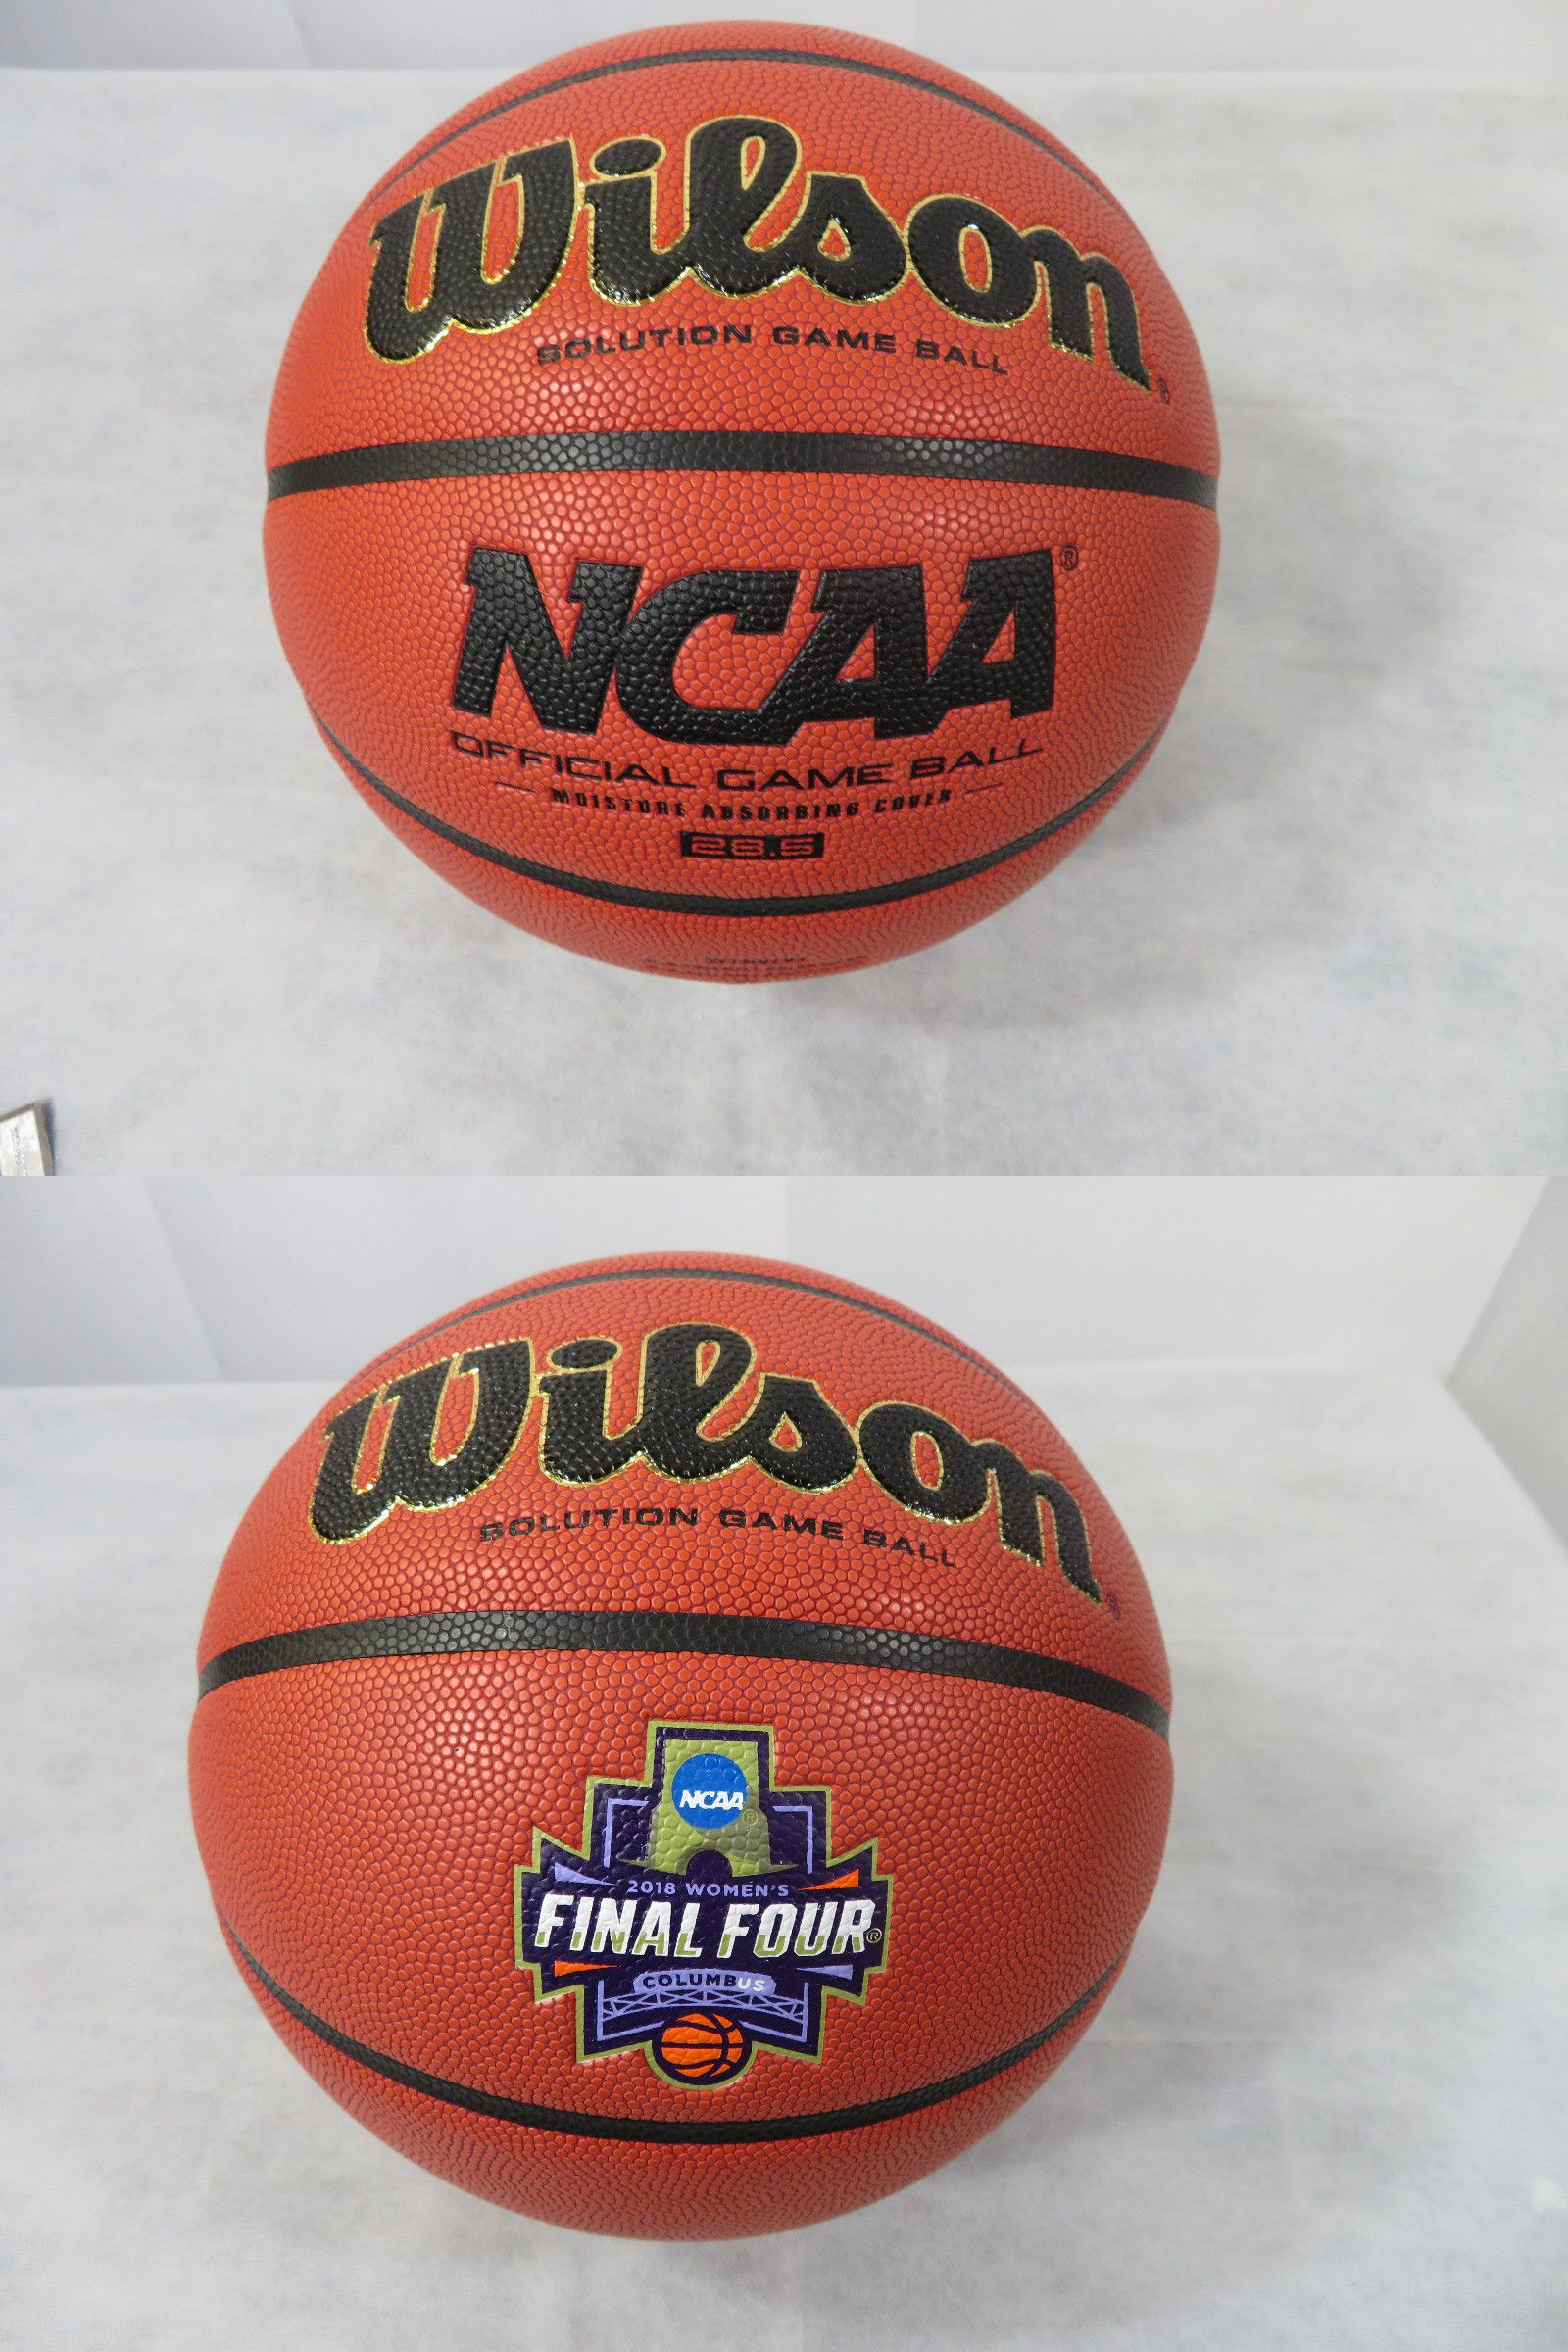 1151daca258 Balls 21208  Wilson Solution Game Ball Basketball 28.5 Ncaa Final Four Game  Columbus New -  BUY IT NOW ONLY   49.99 on  eBay  balls  wilson  solution  ...